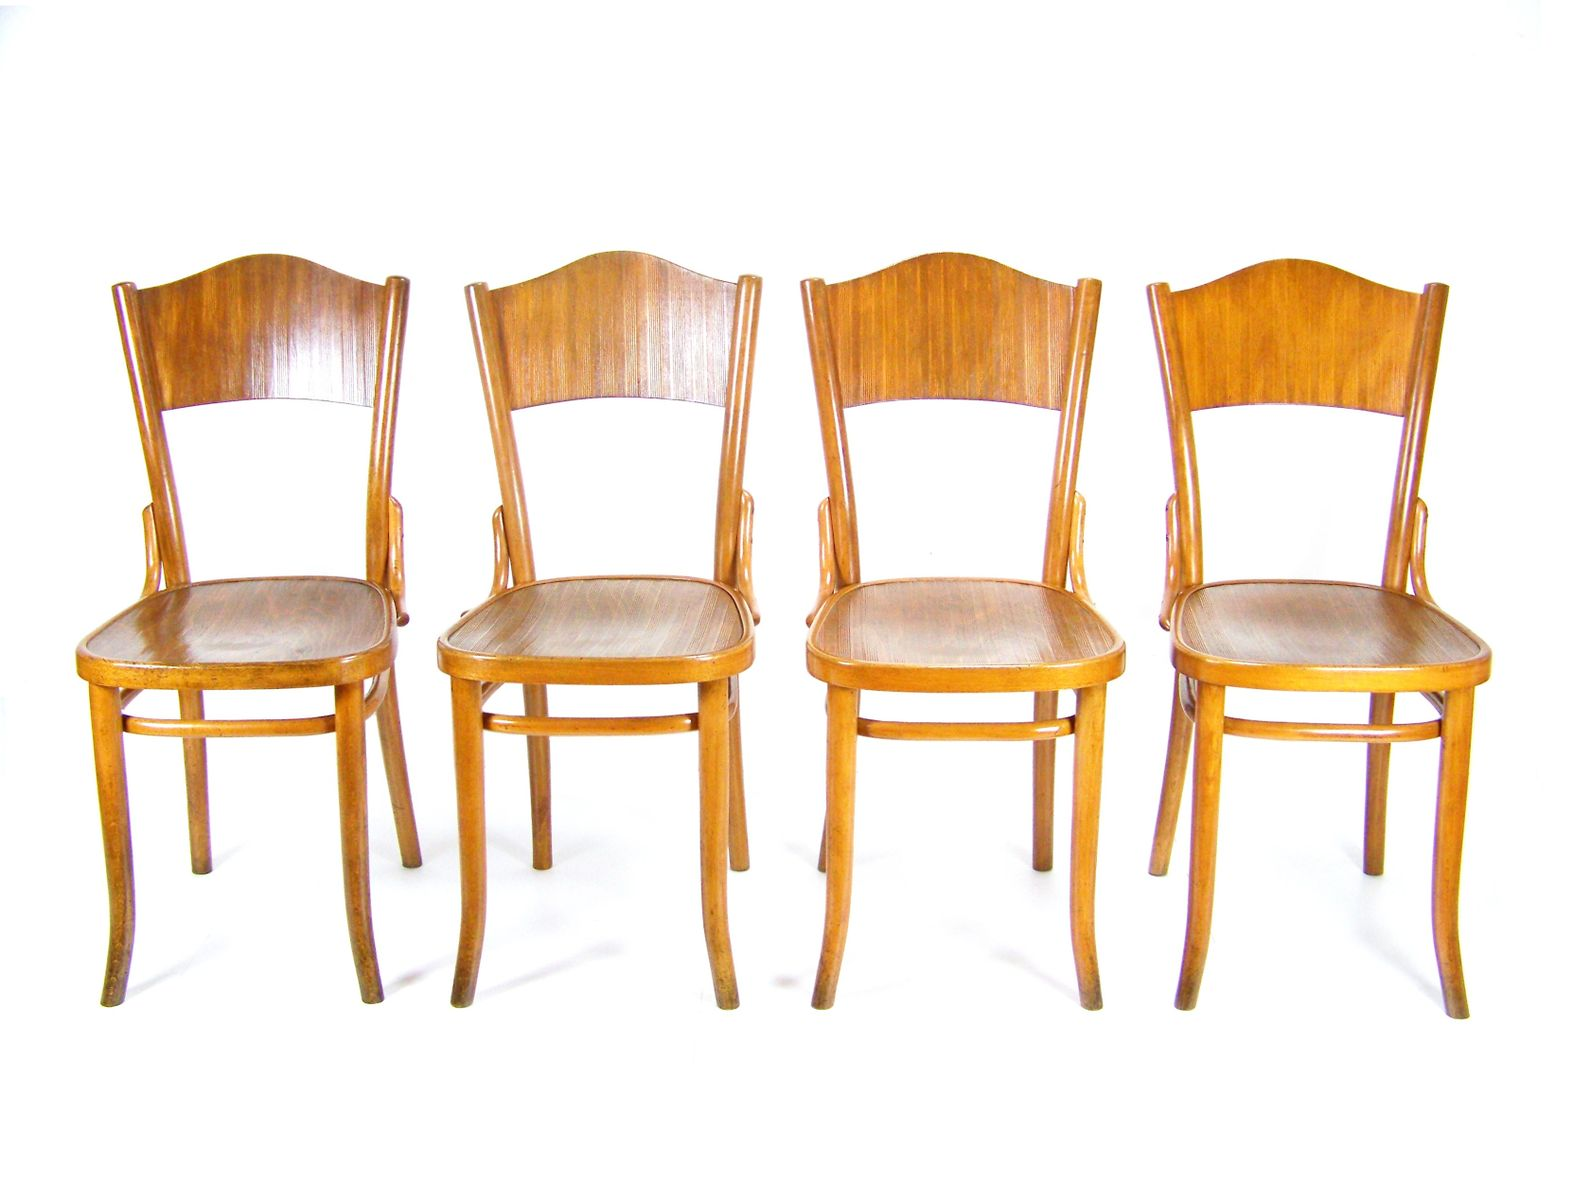 120 Chairs From Thonet, 1920s, Set Of 4